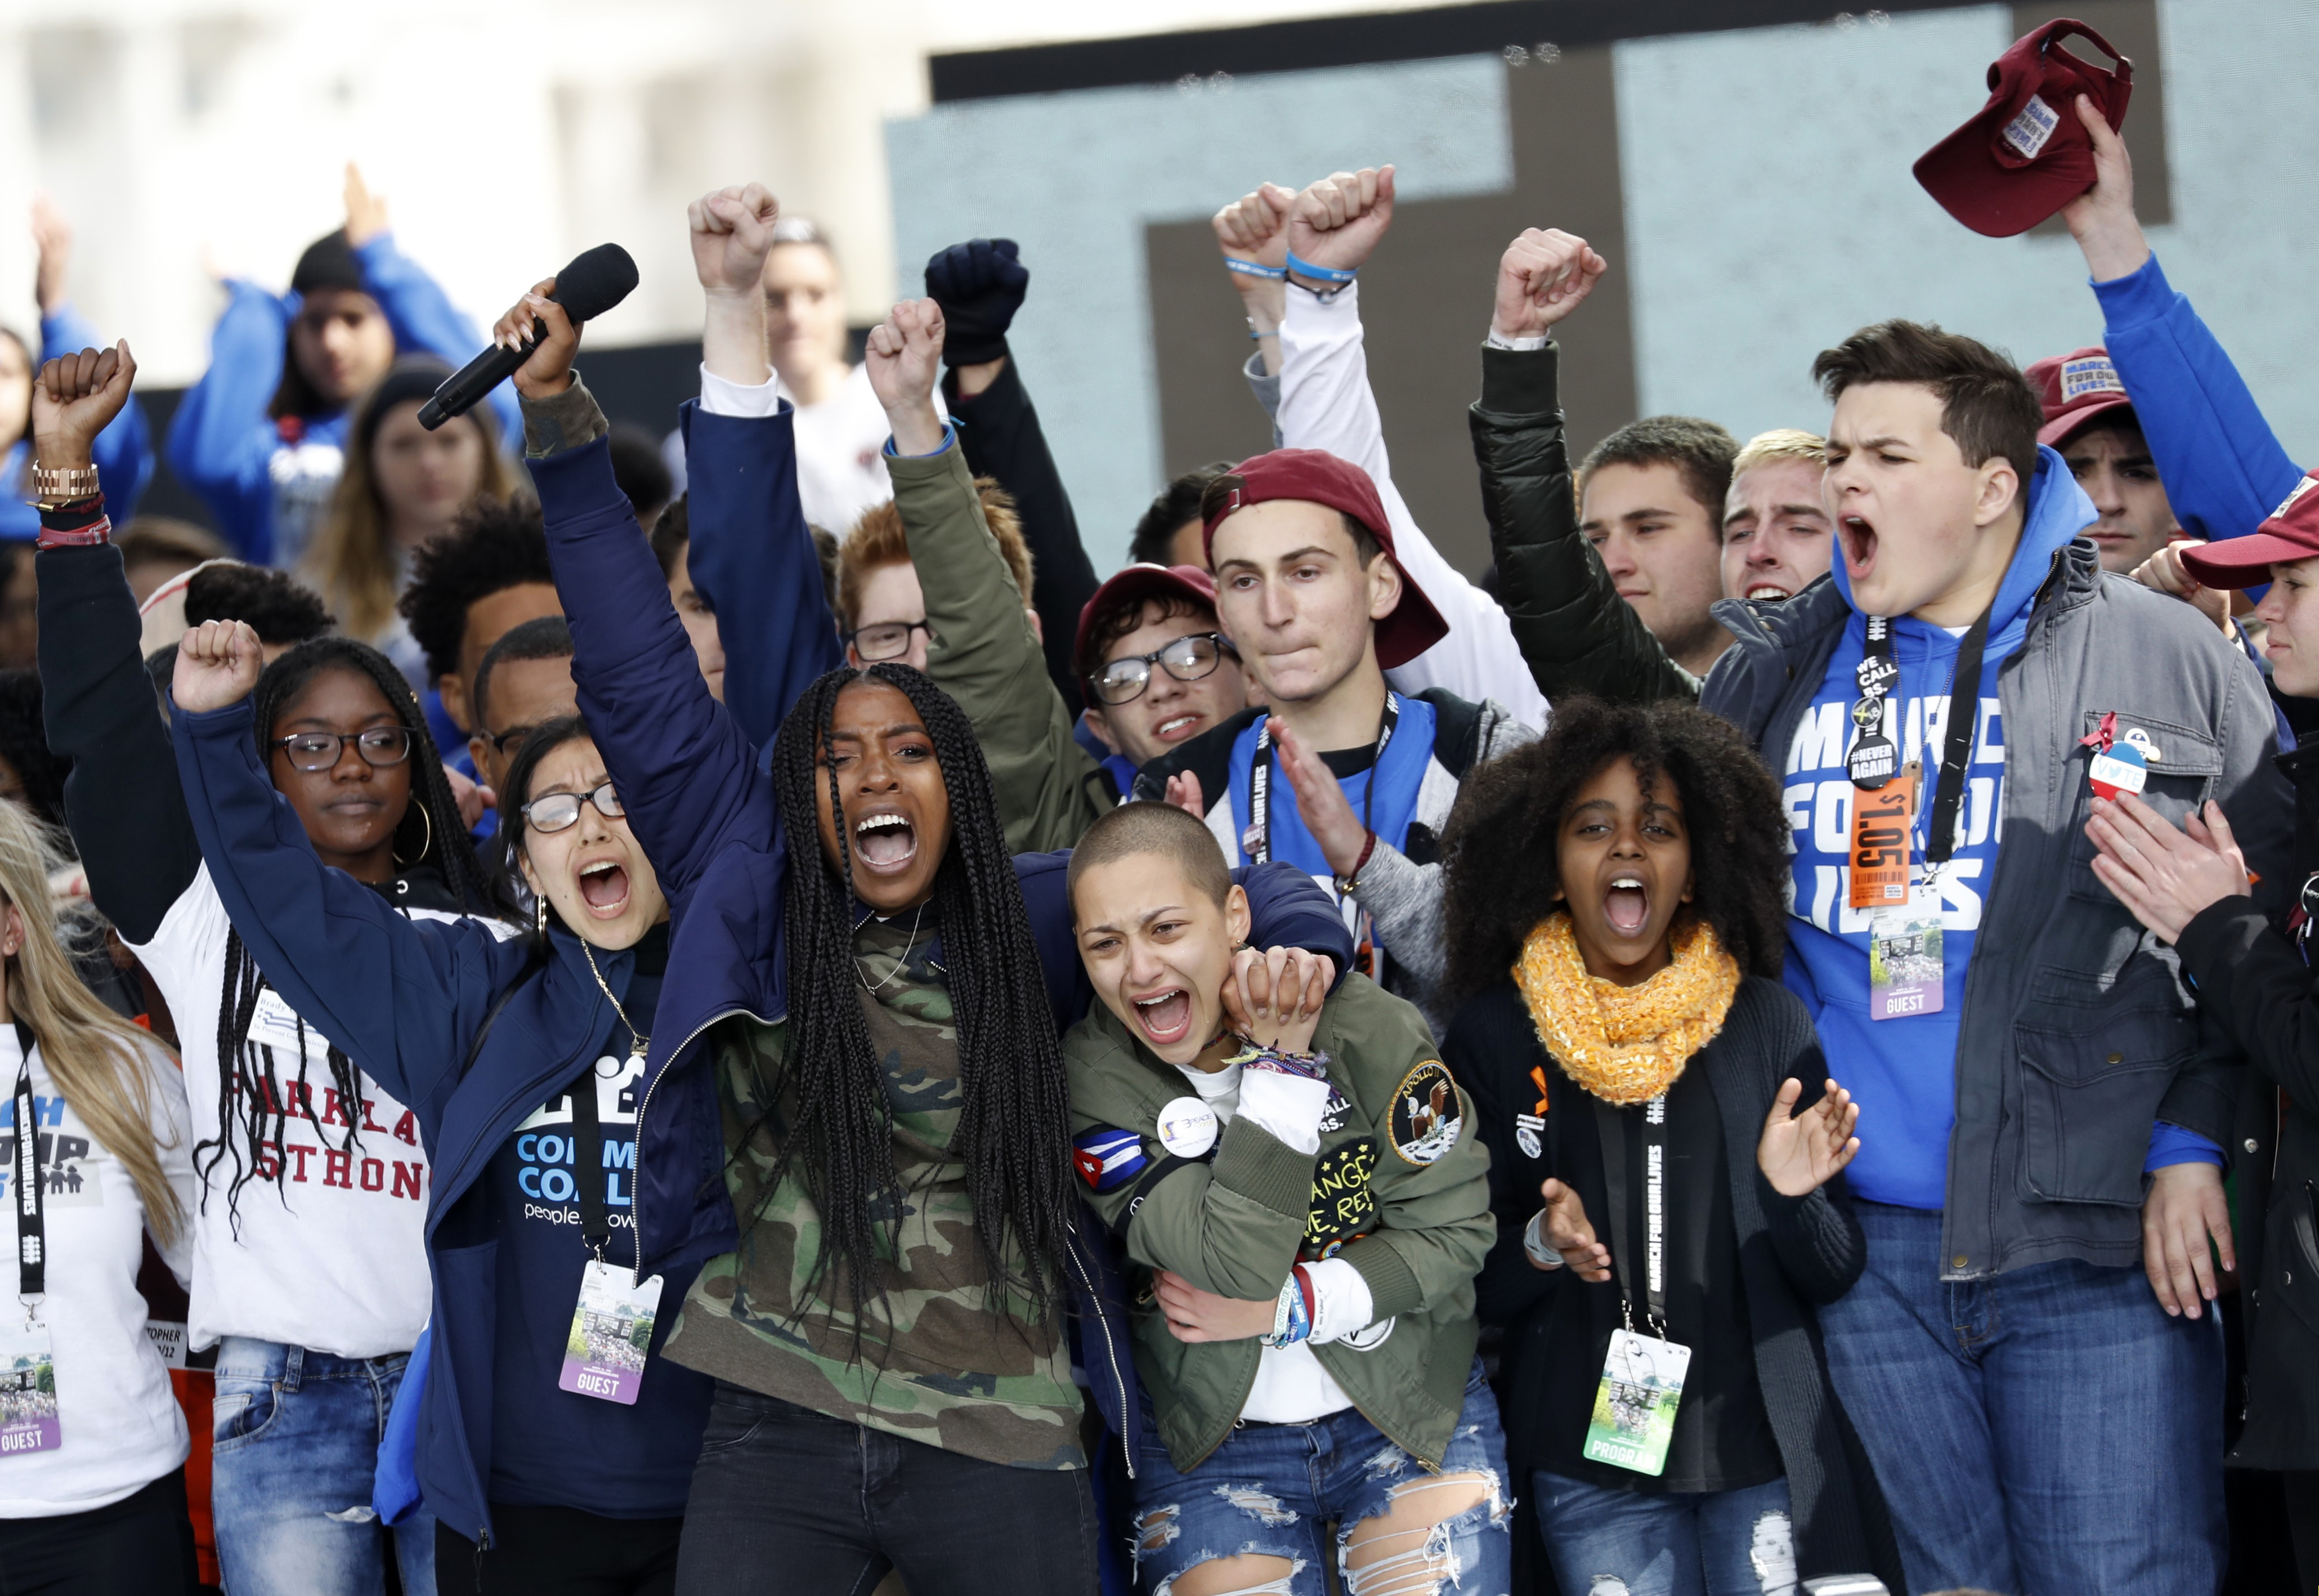 """Students and shooting survivors Tyra Hemans and Emma Gonzalez (3rd from R), from Marjory Stoneman Douglas High School in Parkland, Florida, and 11-year-old Naomi Wadler of Alexandria, Virginia (2nd from R), sing along with other students and shooting survivors at the conclusion of the """"March for Our Lives"""" event. REUTERS/Aaron P. Bernstein"""